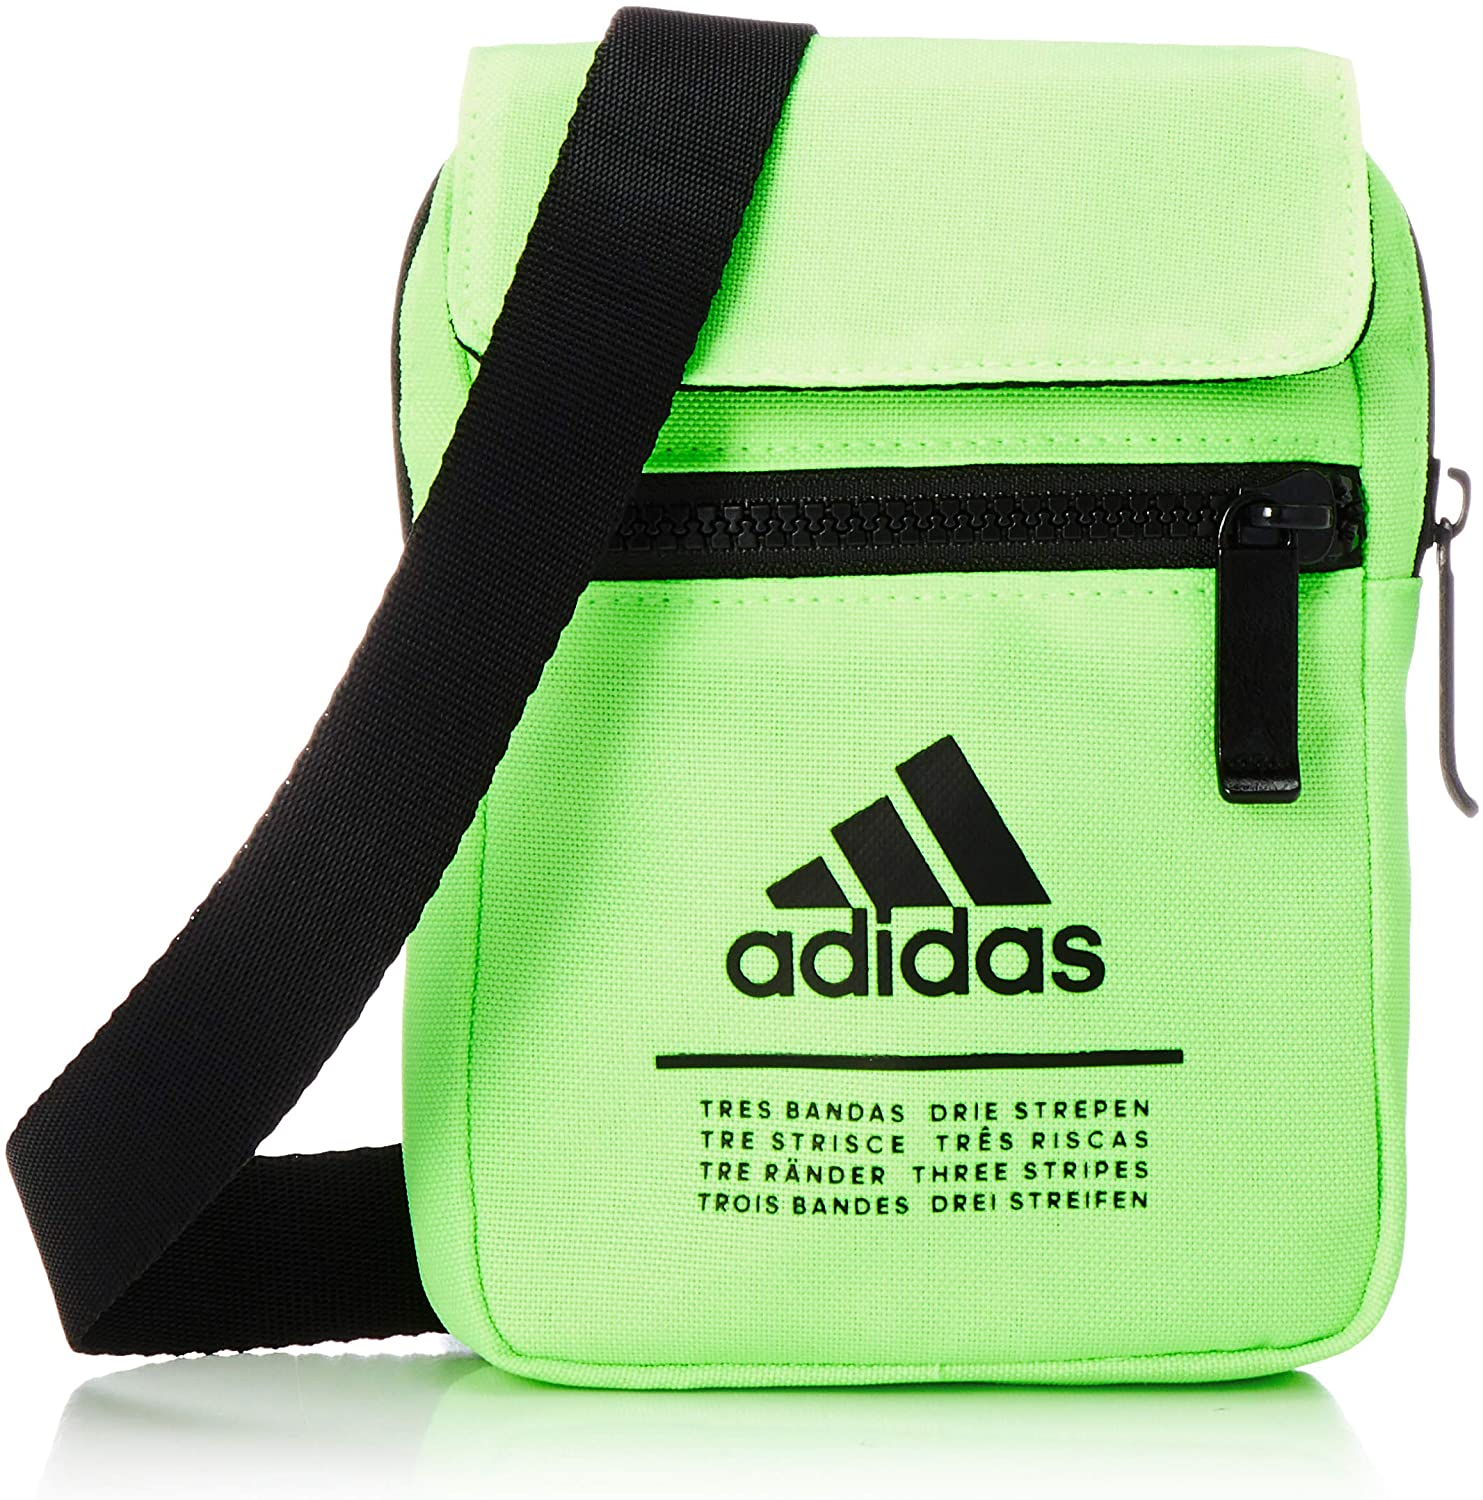 adidas Tasche amazon